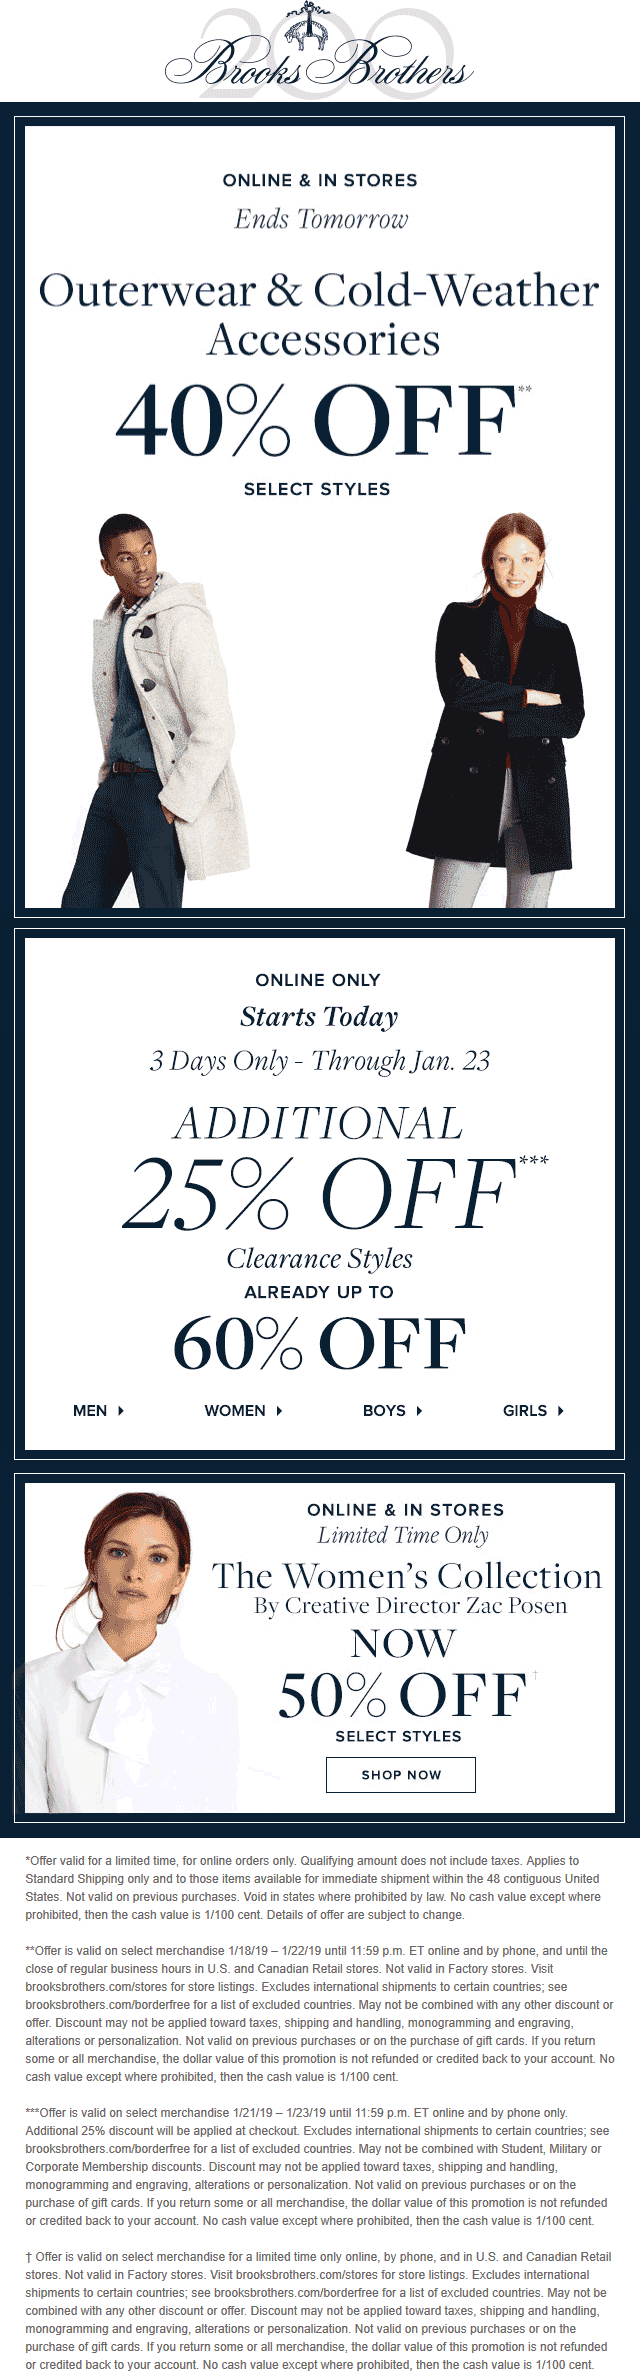 Brooks Brothers Coupon January 2020 40% off cold weather & more at Brooks Brothers, ditto online